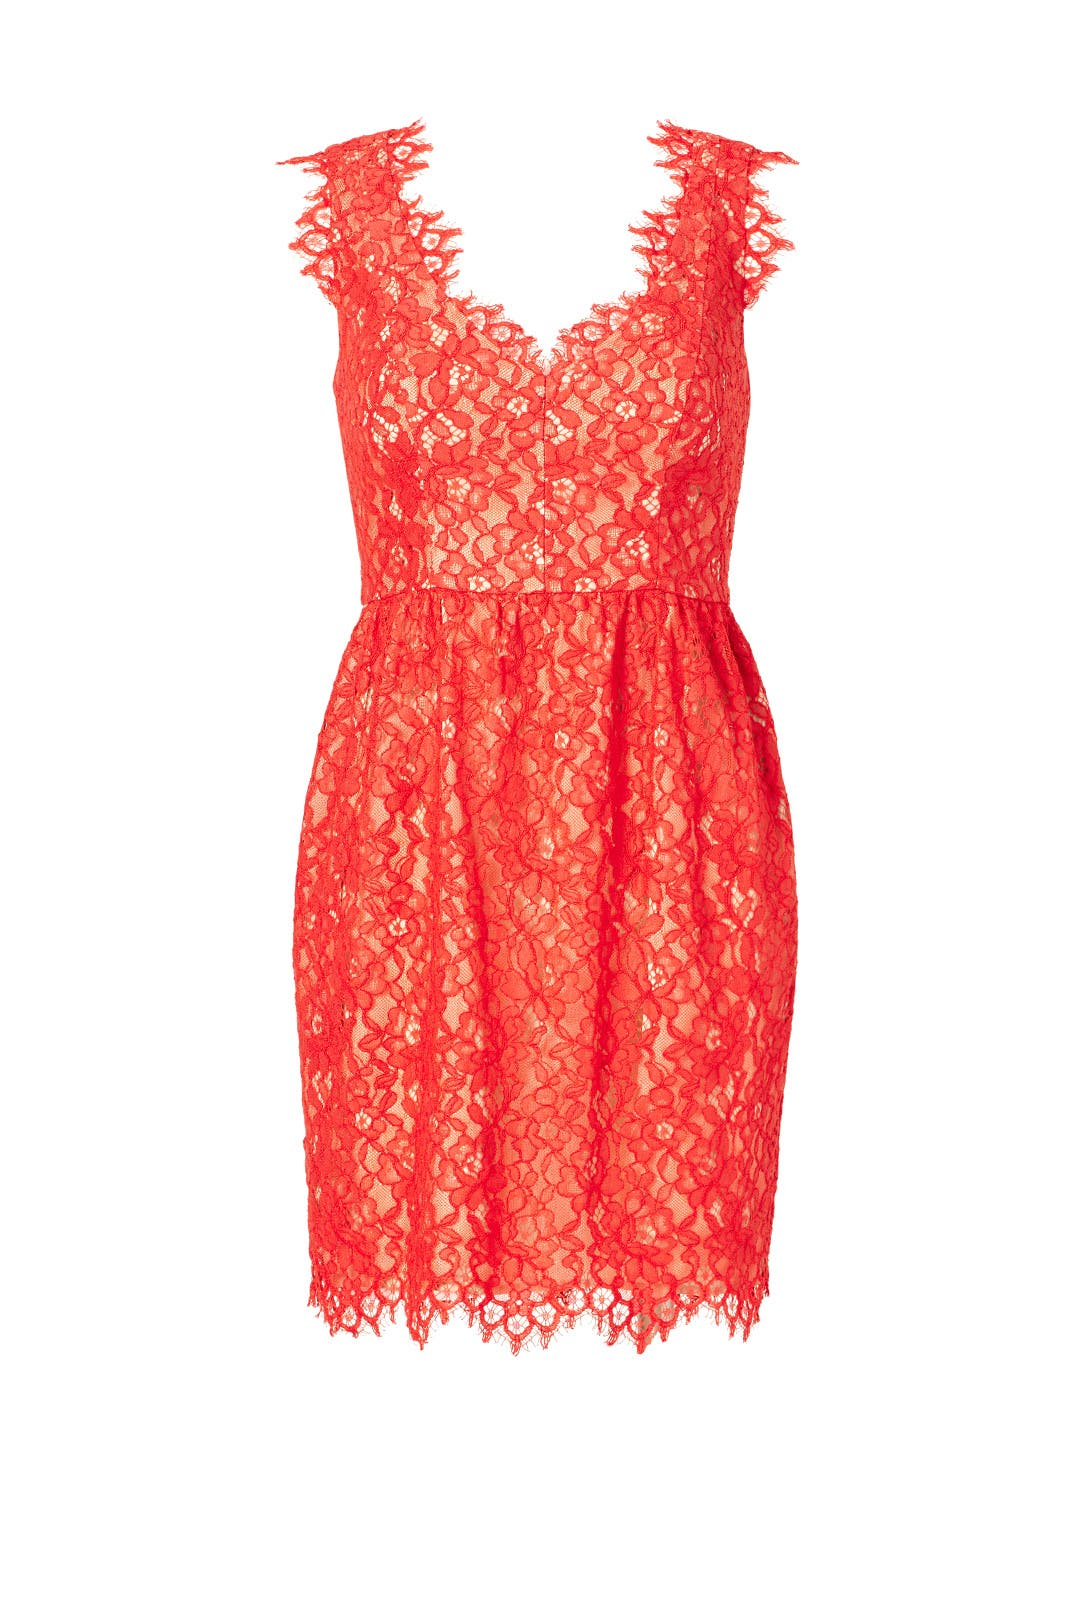 Do Shoshanna Dresses Run Small Lace Sierra Dress by Shoshanna